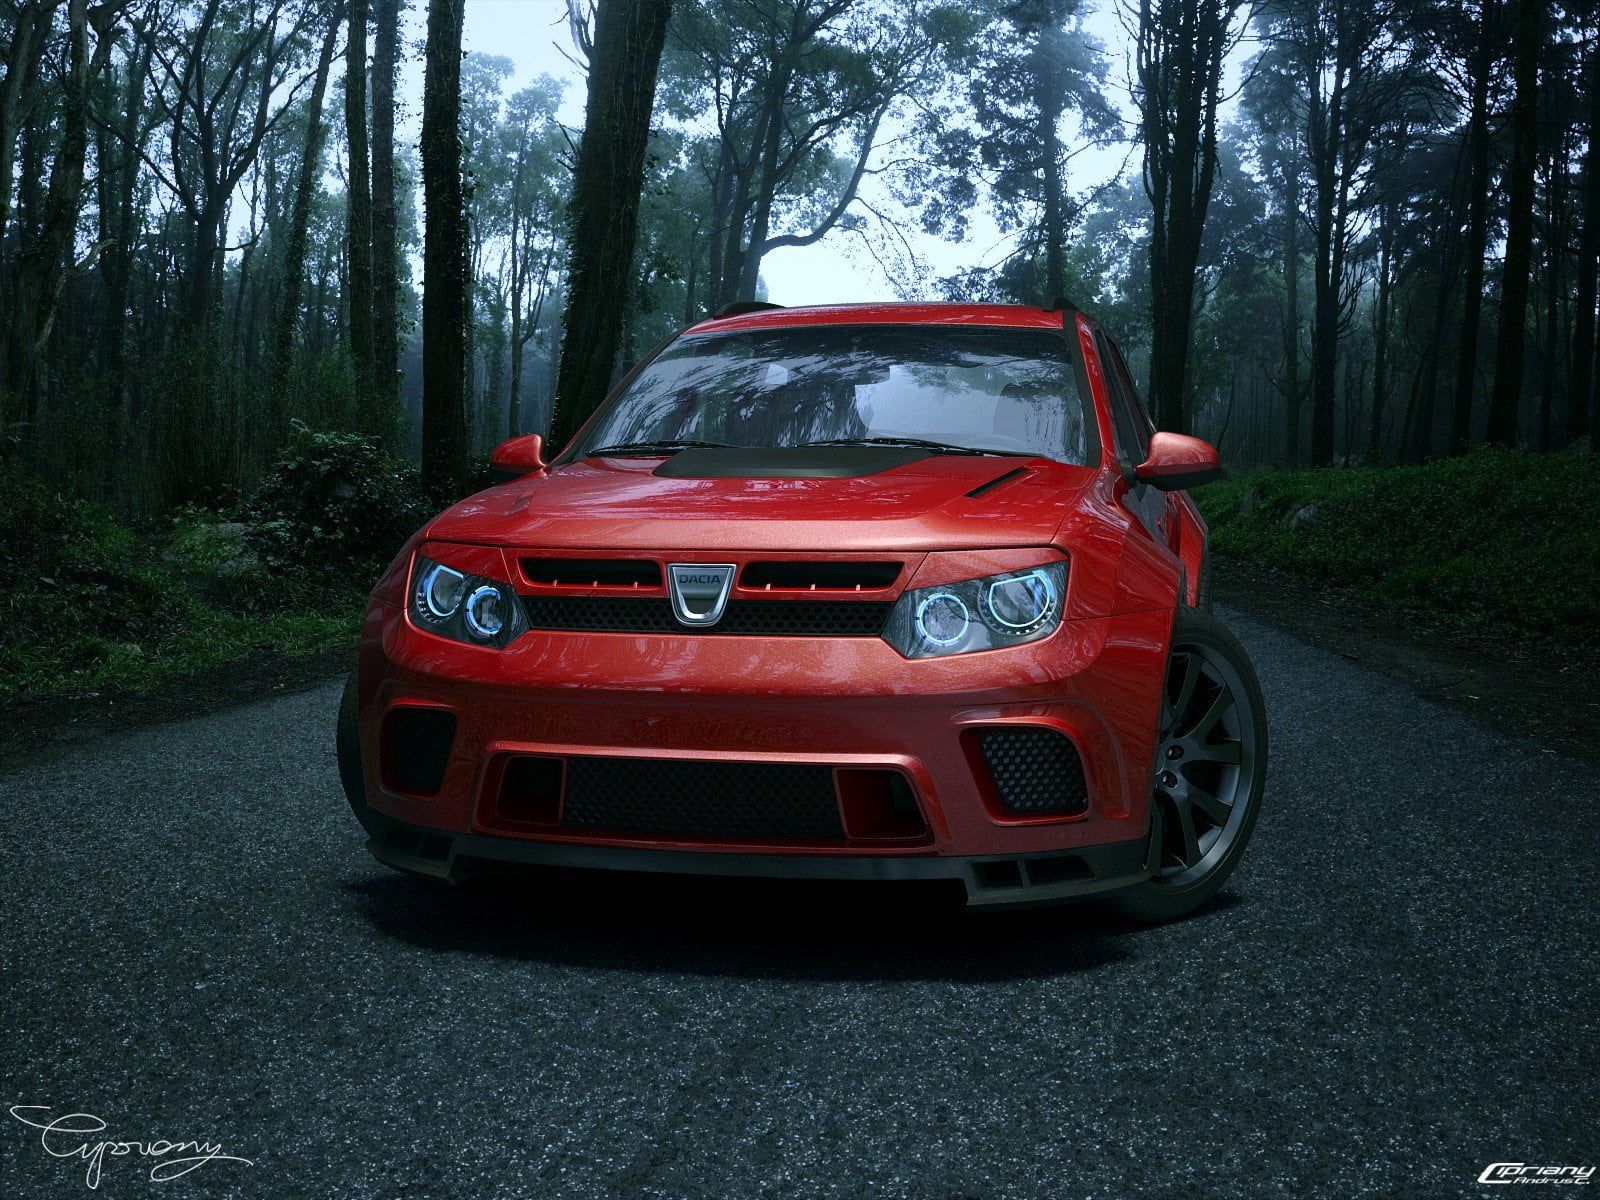 Romania Cars Market in 2016